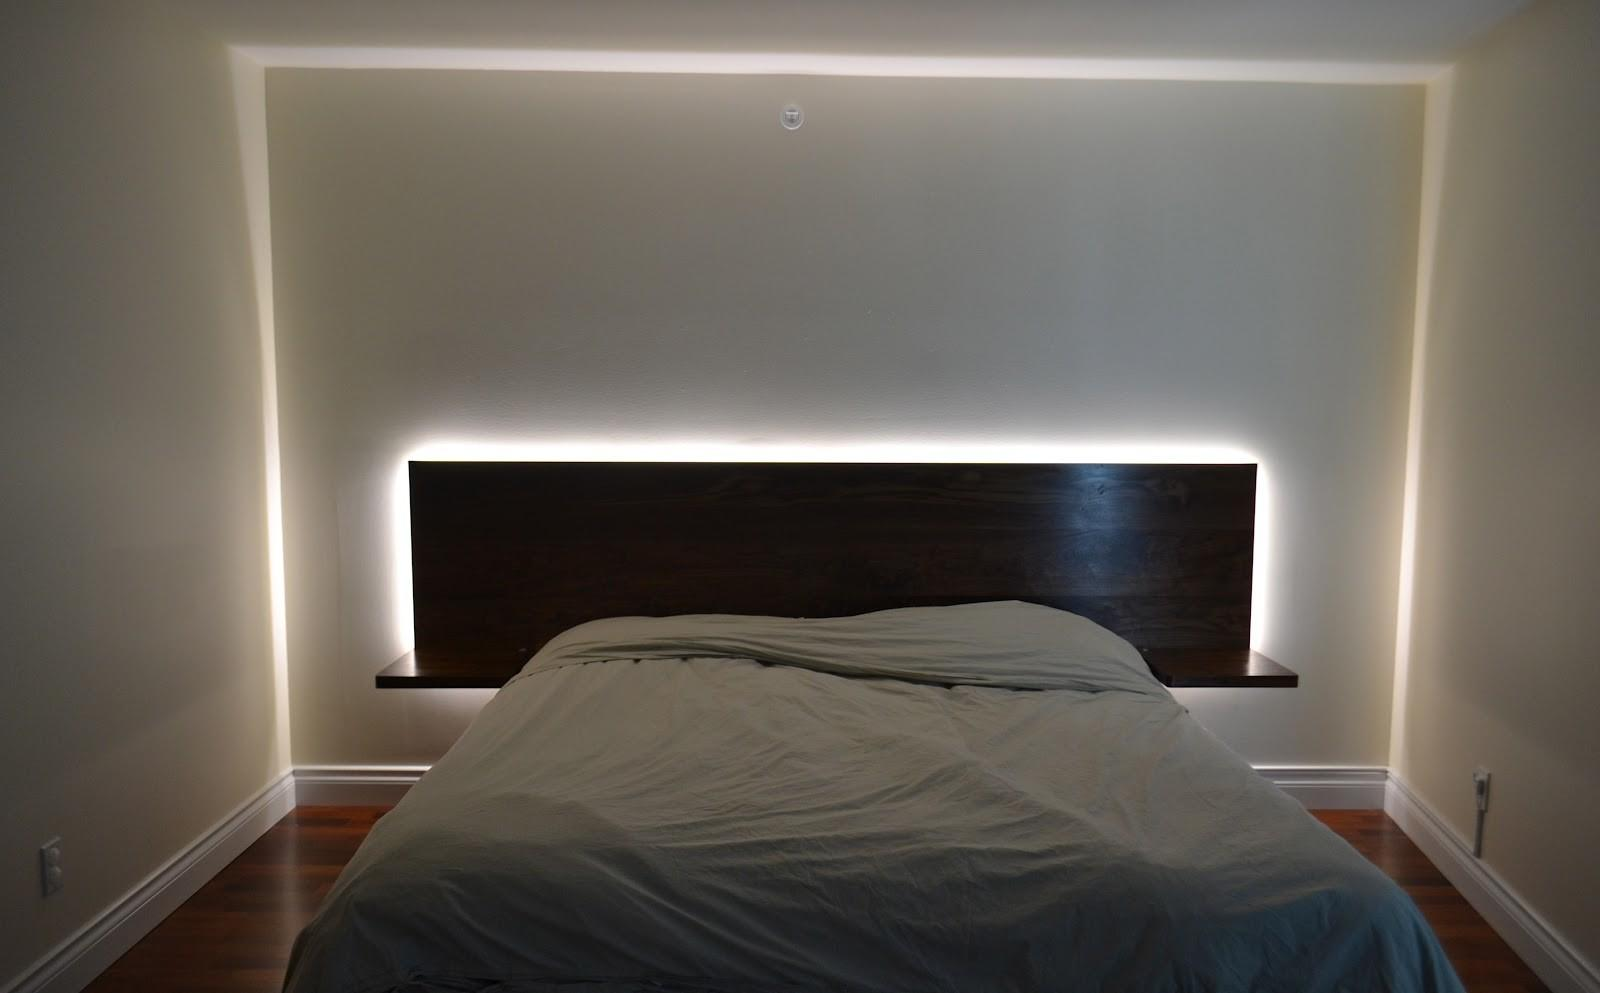 23 Professionally Diy Headboard With Leds That Will Boost Your Imagination Photos Decoratorist